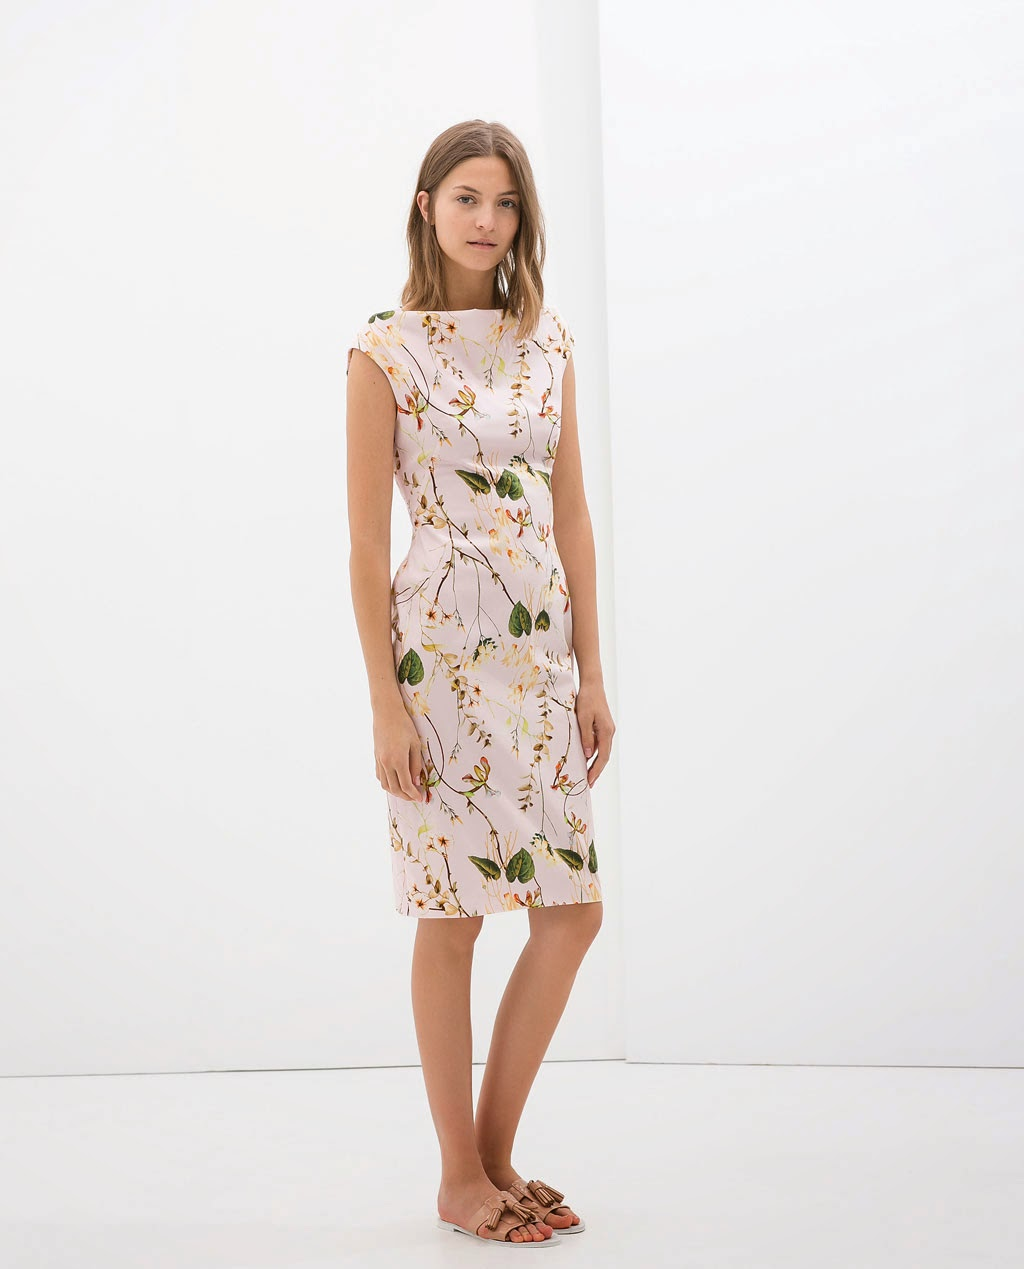 Just J: What to Wear to a Wedding: Day to Night